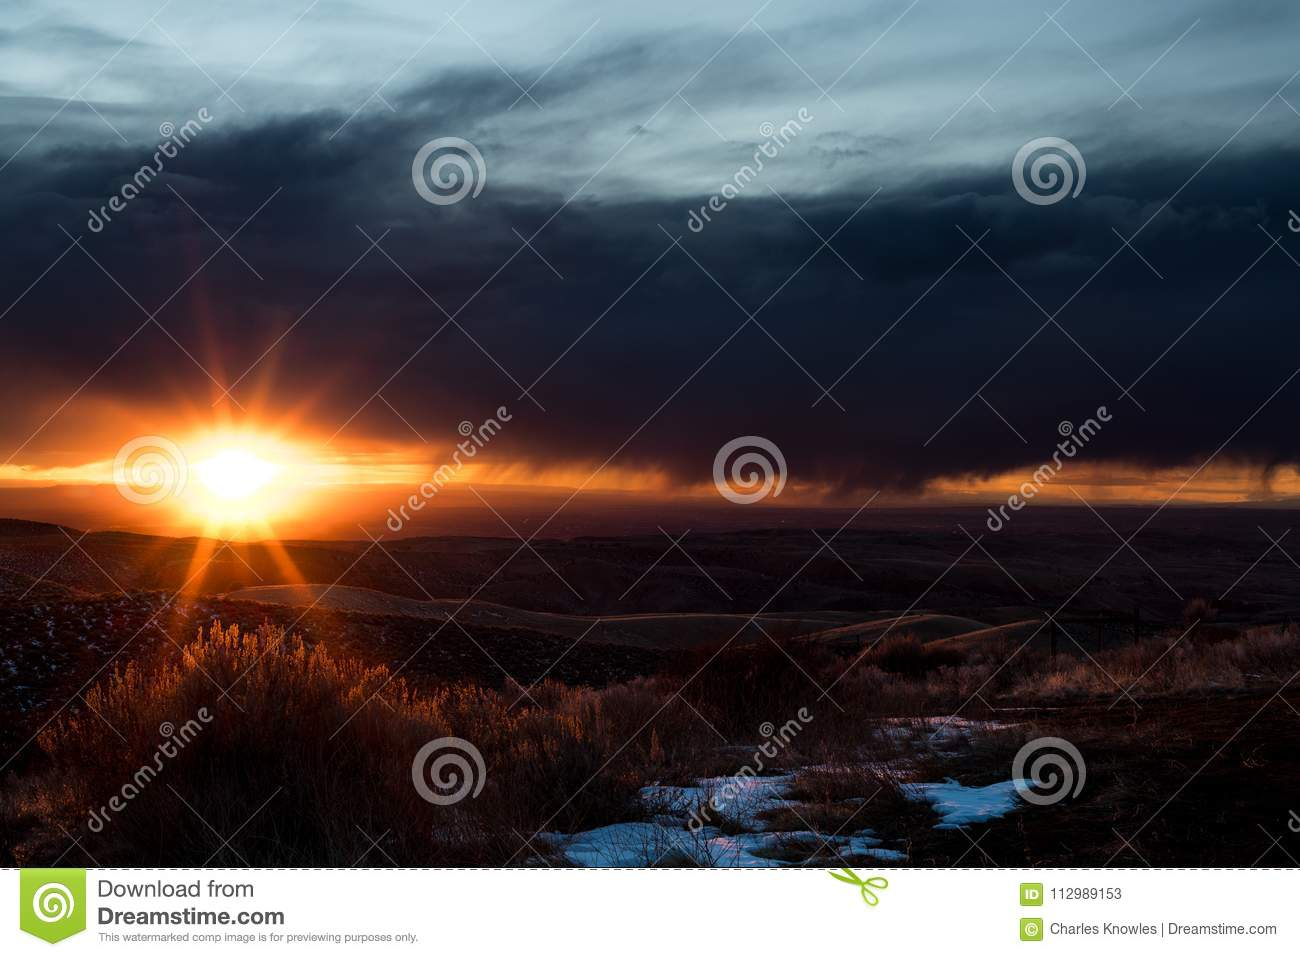 South Idaho storks and sunset over the desert with a formed star